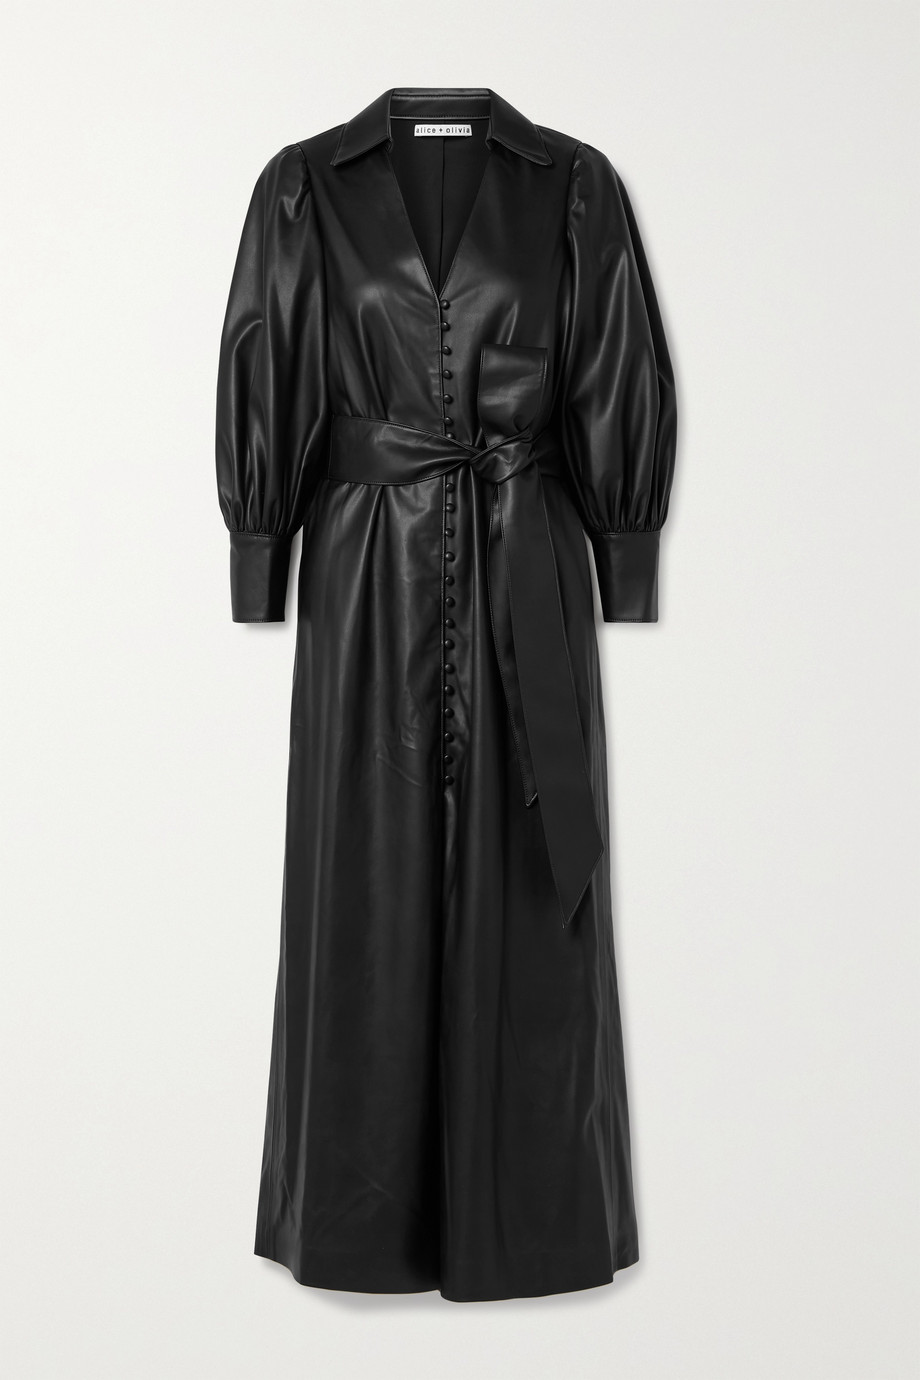 Alice + Olivia Zarita belted vegan leather maxi shirt dress